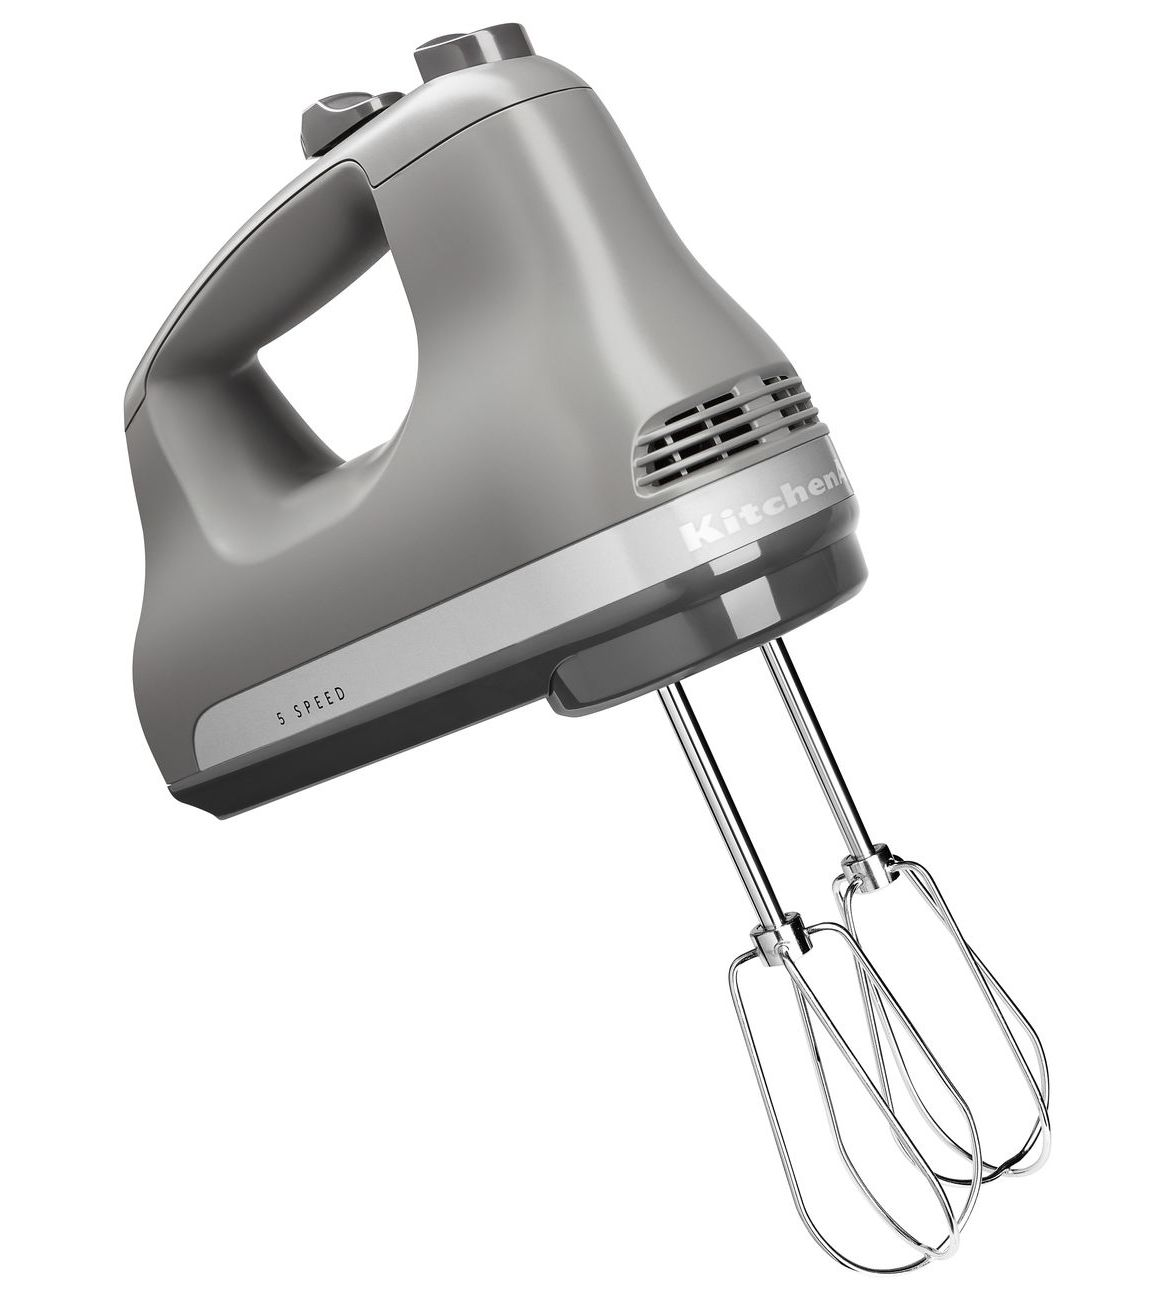 Kitchenaid 174 5 Speed Ultra Power Hand Mixer Khm512 Ebay